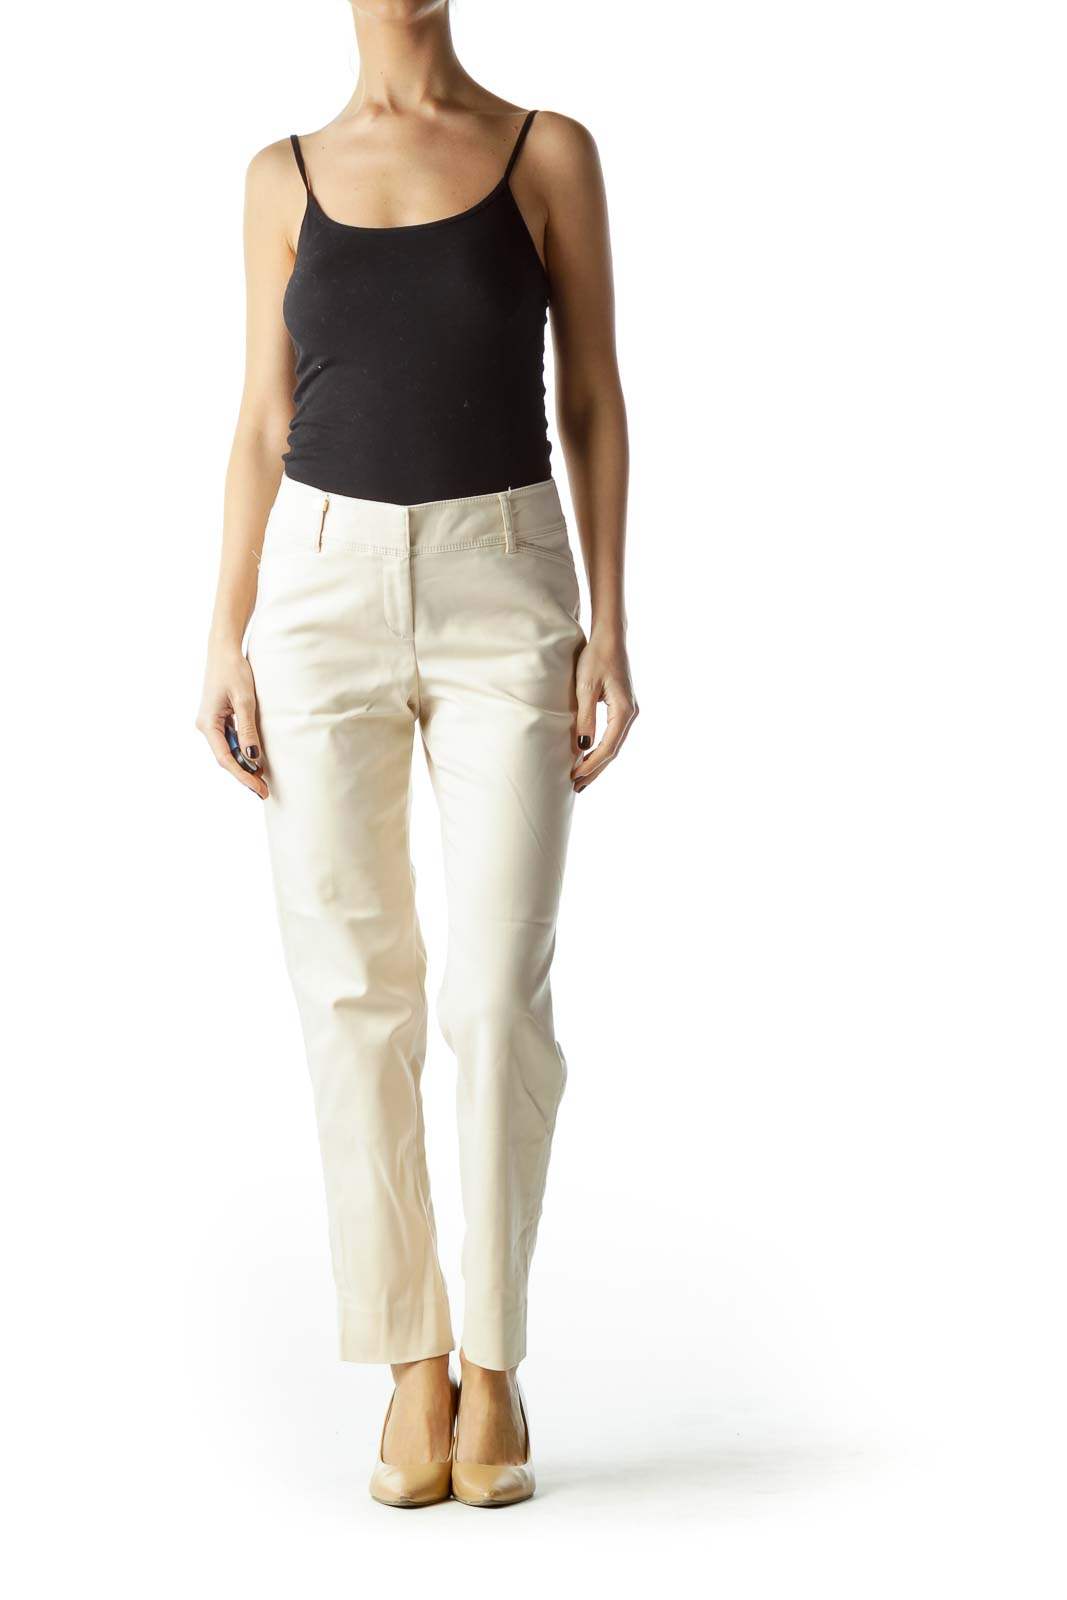 Beige Stretch Metallic Accents Pant